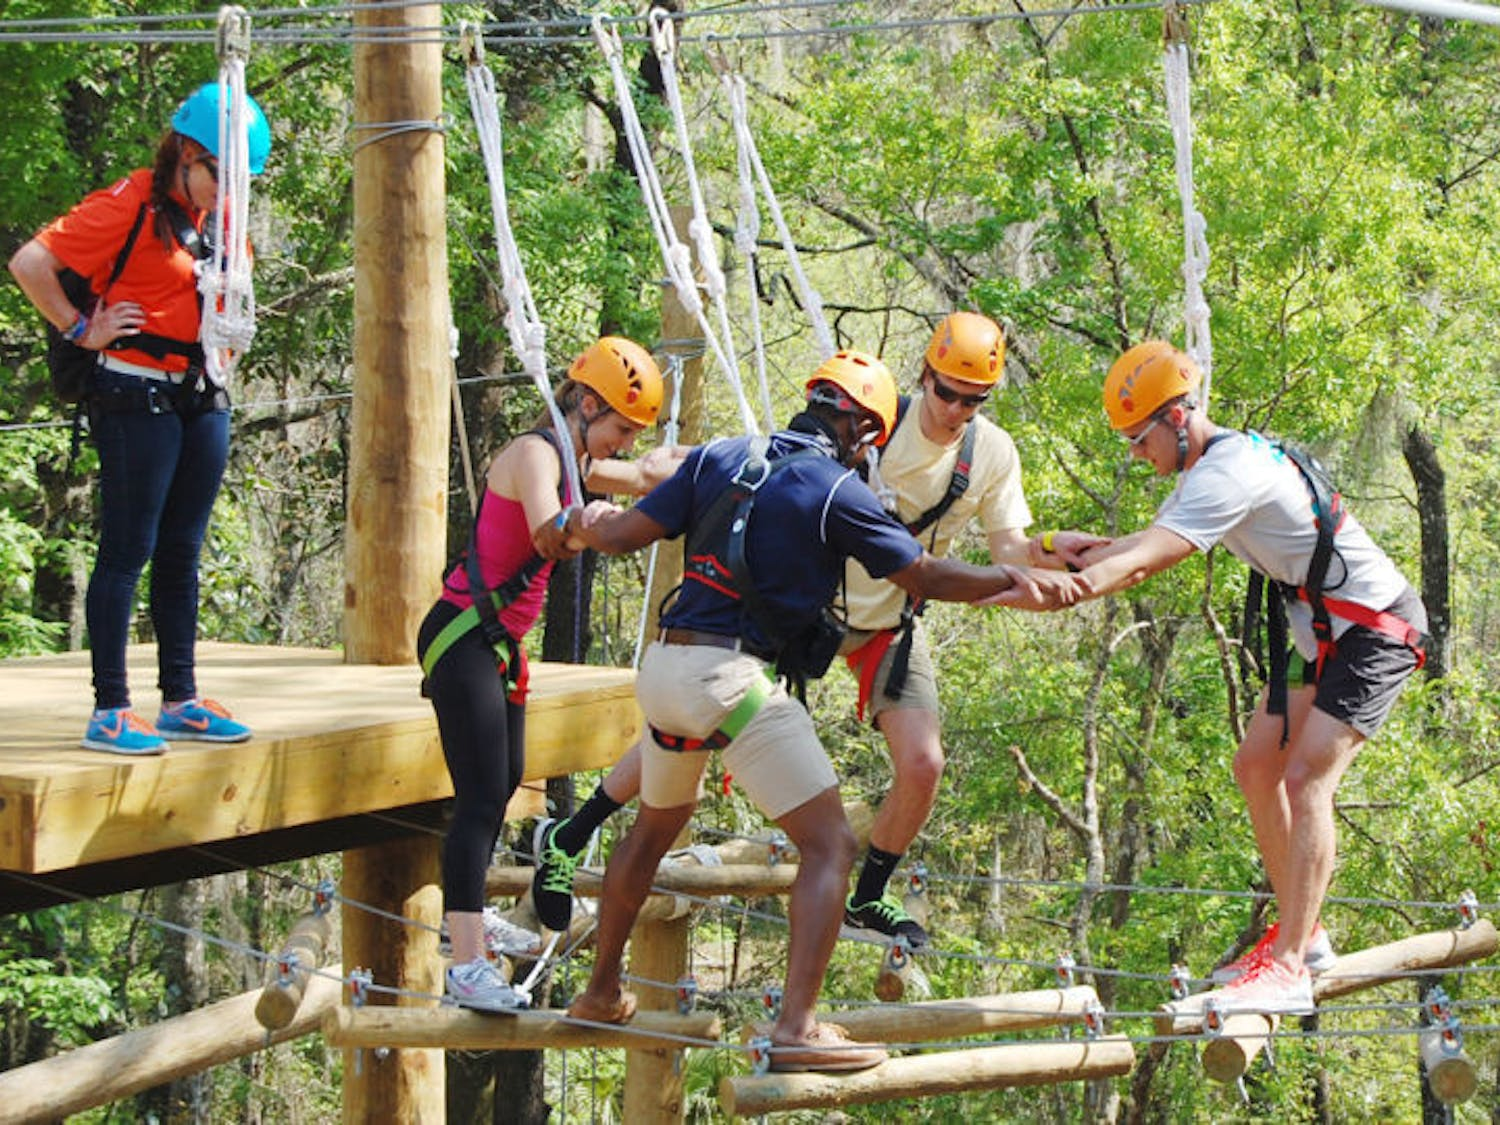 A group makes its way across the top level of the new UF Outdoor Team Challenge Courses at Lake Wauburg on Friday. About 20 people strapped on harnesses to climb to the top and zip line to the bottom.